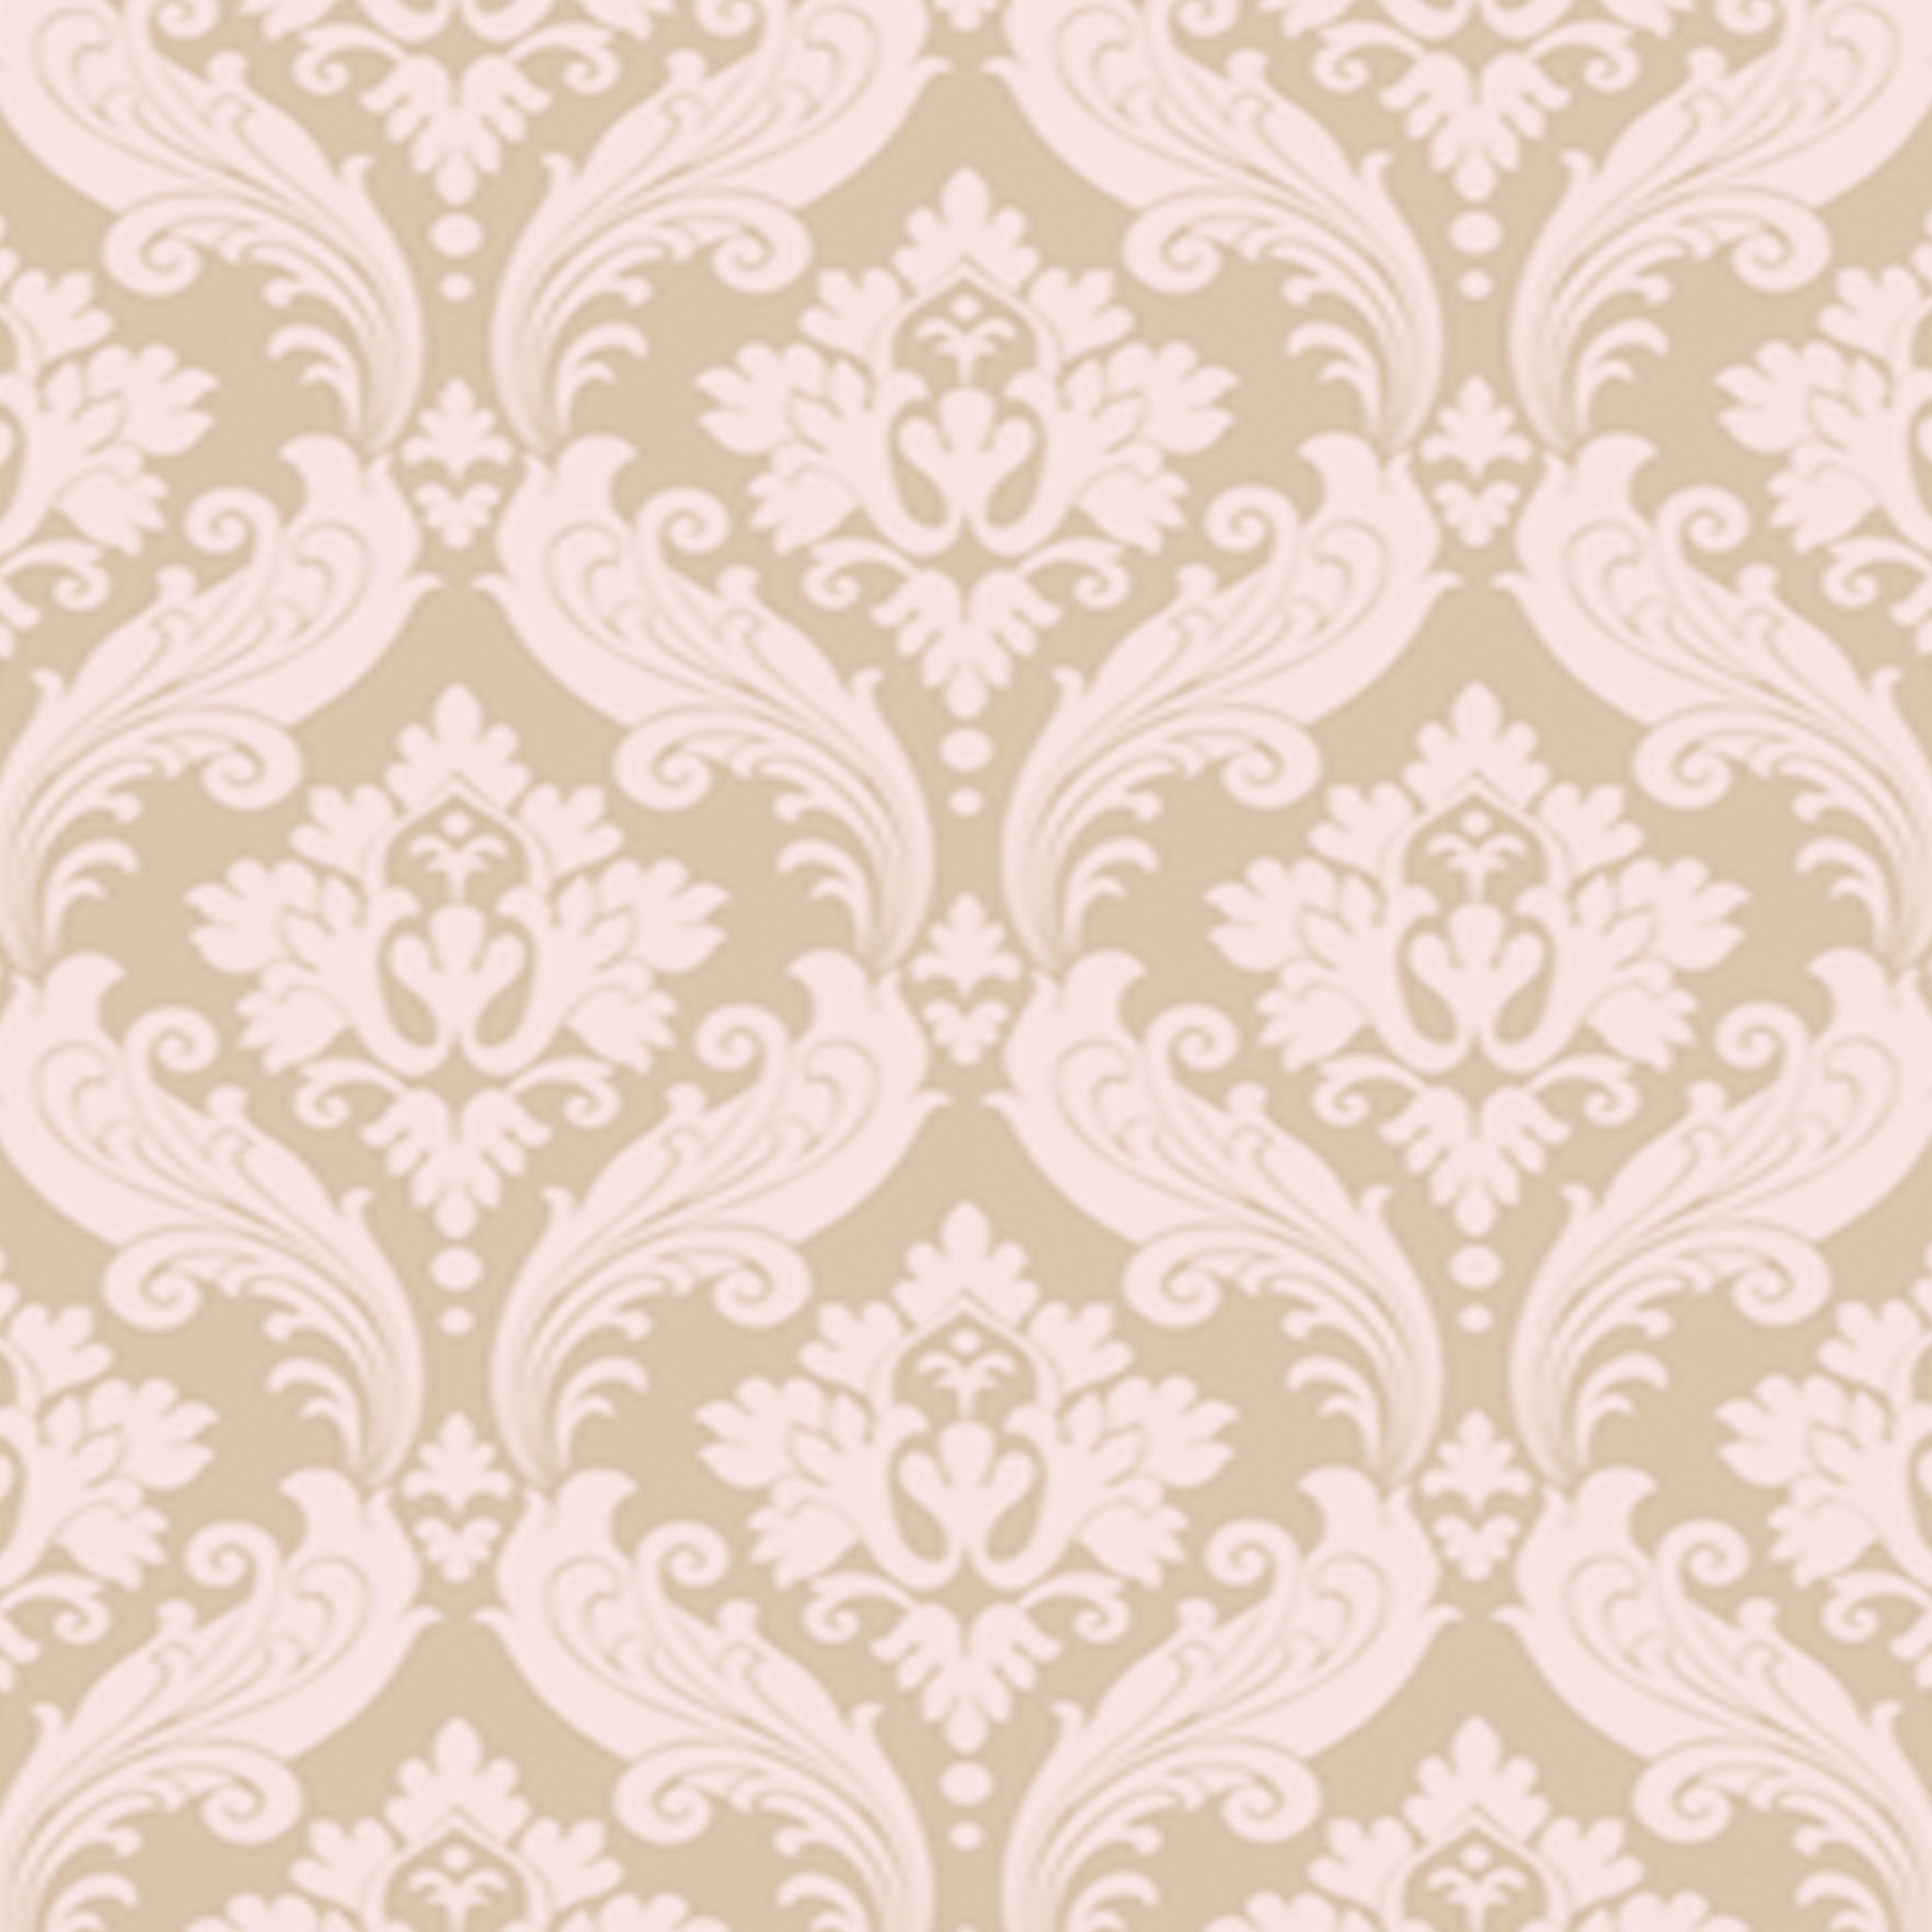 Vintage Flock Kelly Hoppen Wallpapers A Richly Detailed Faux Flock Damask Design Sumptuous Colours Given A Rich Feel To Pattern